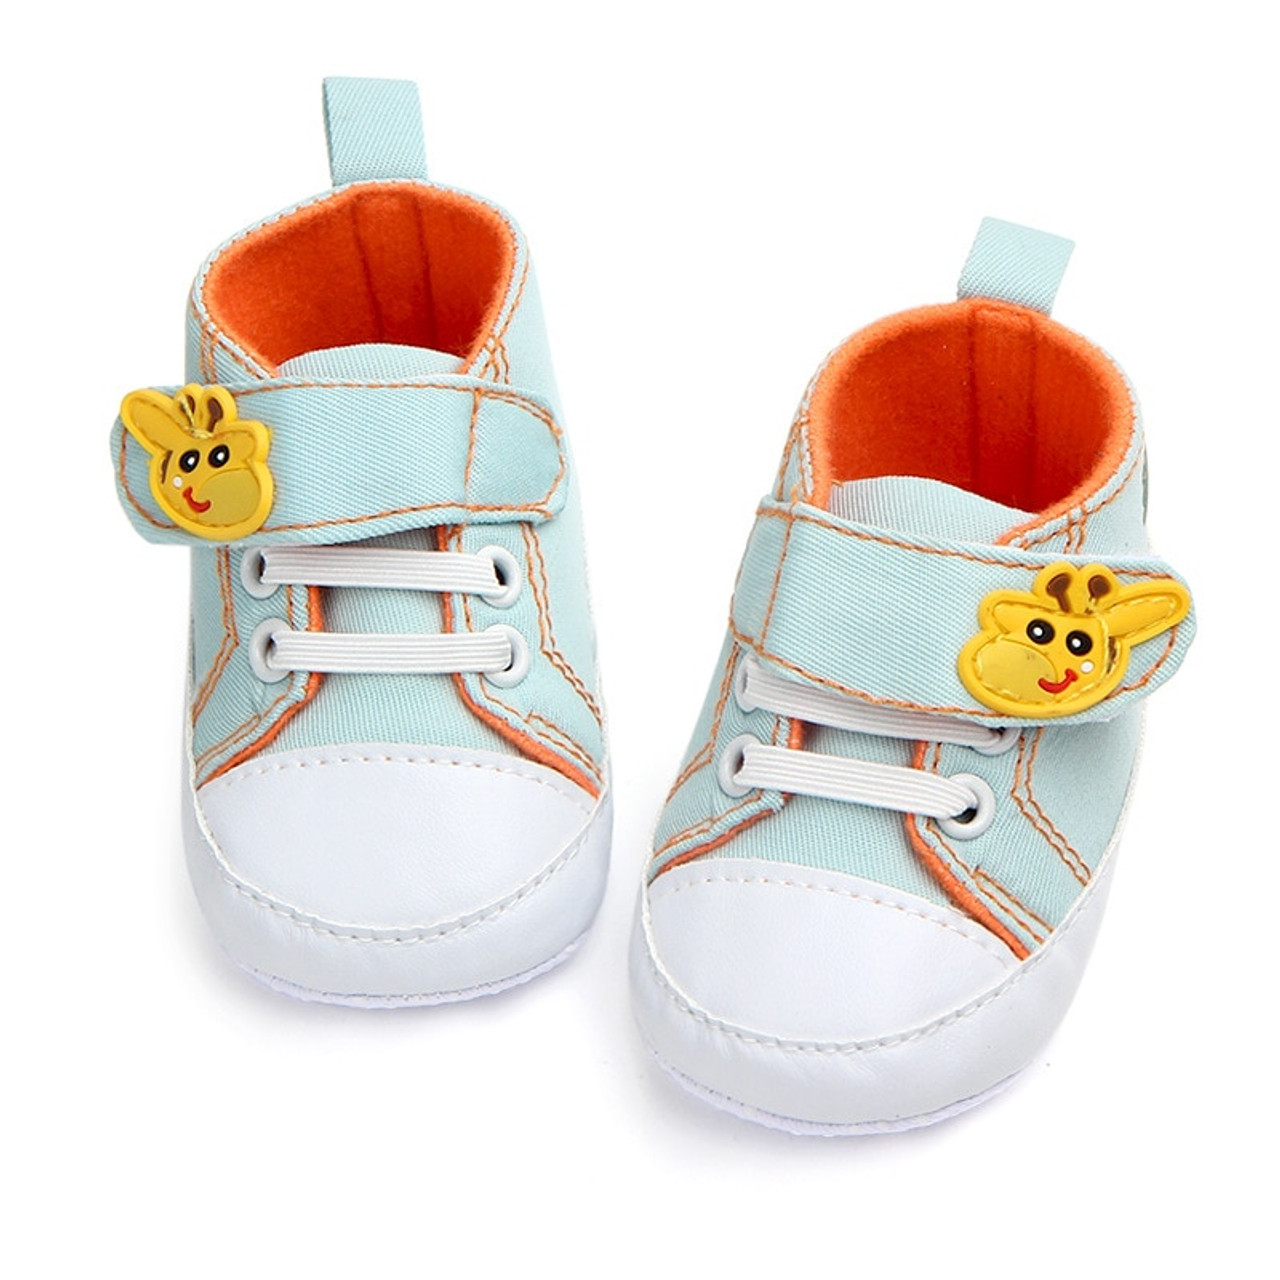 ... 0-12M canvas baby shoes boys soft sole toddler infant shoes newborn  boys sneakers baby ... 5c3b2cf1cde9